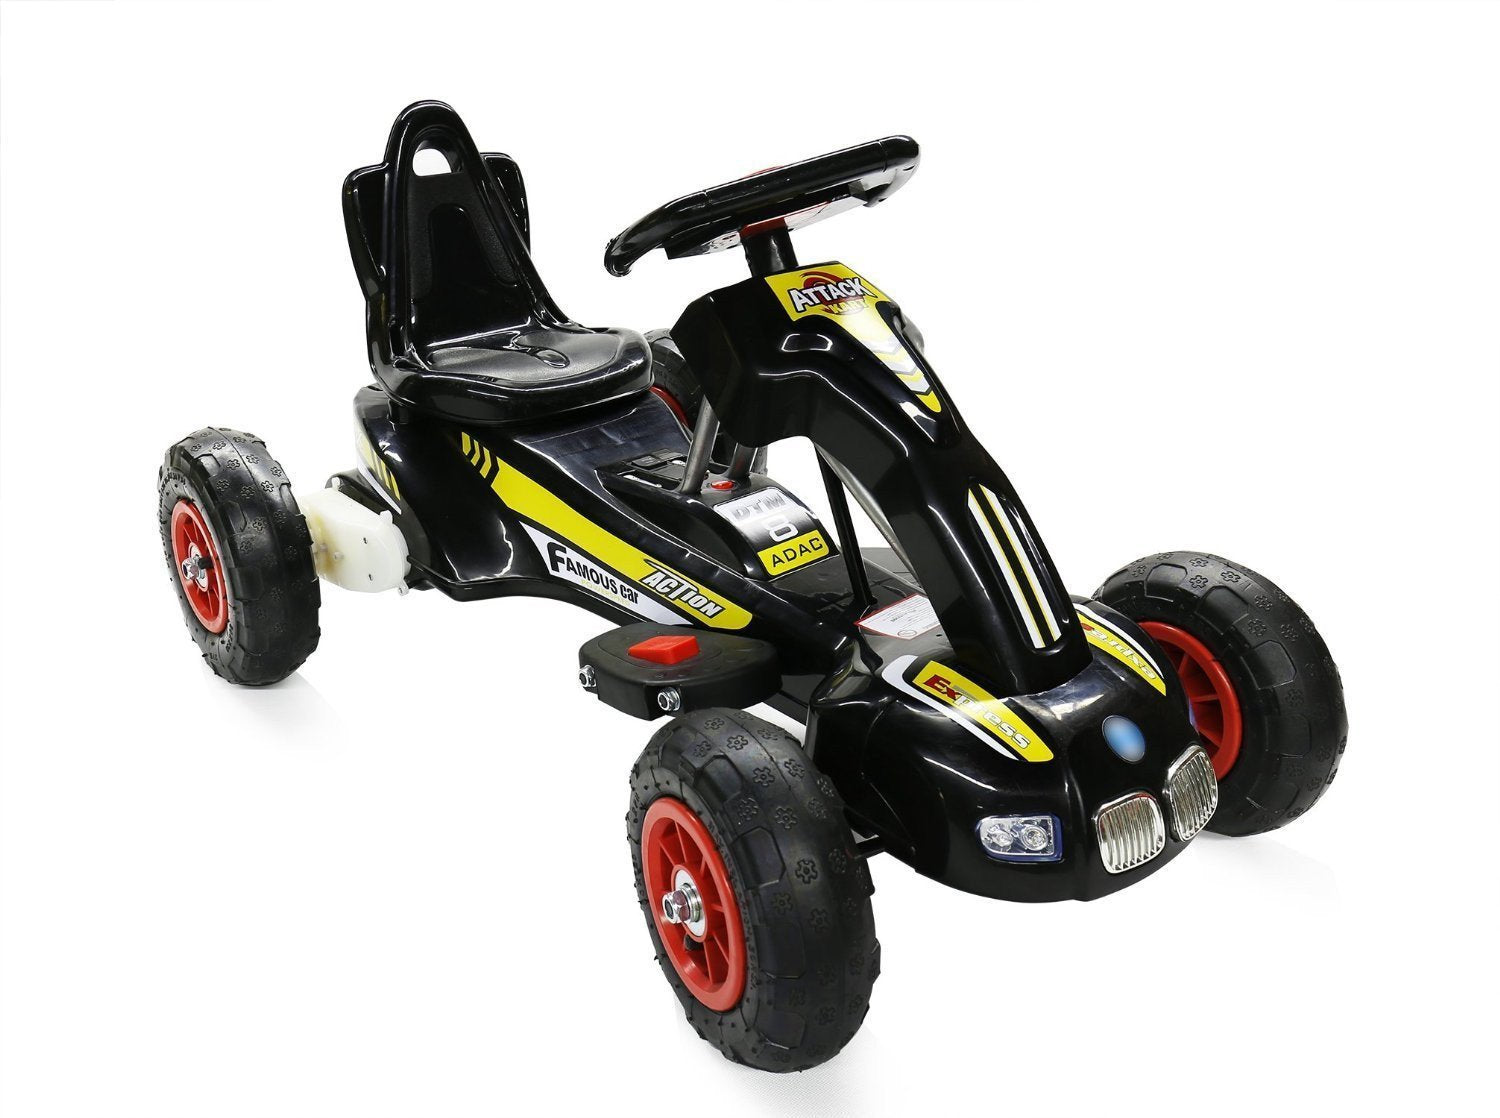 6V 12W Battery Powered Electric Go Kart Rubber Air Wheels (Model: S1388) BLACK - GADGET EXPRESS®